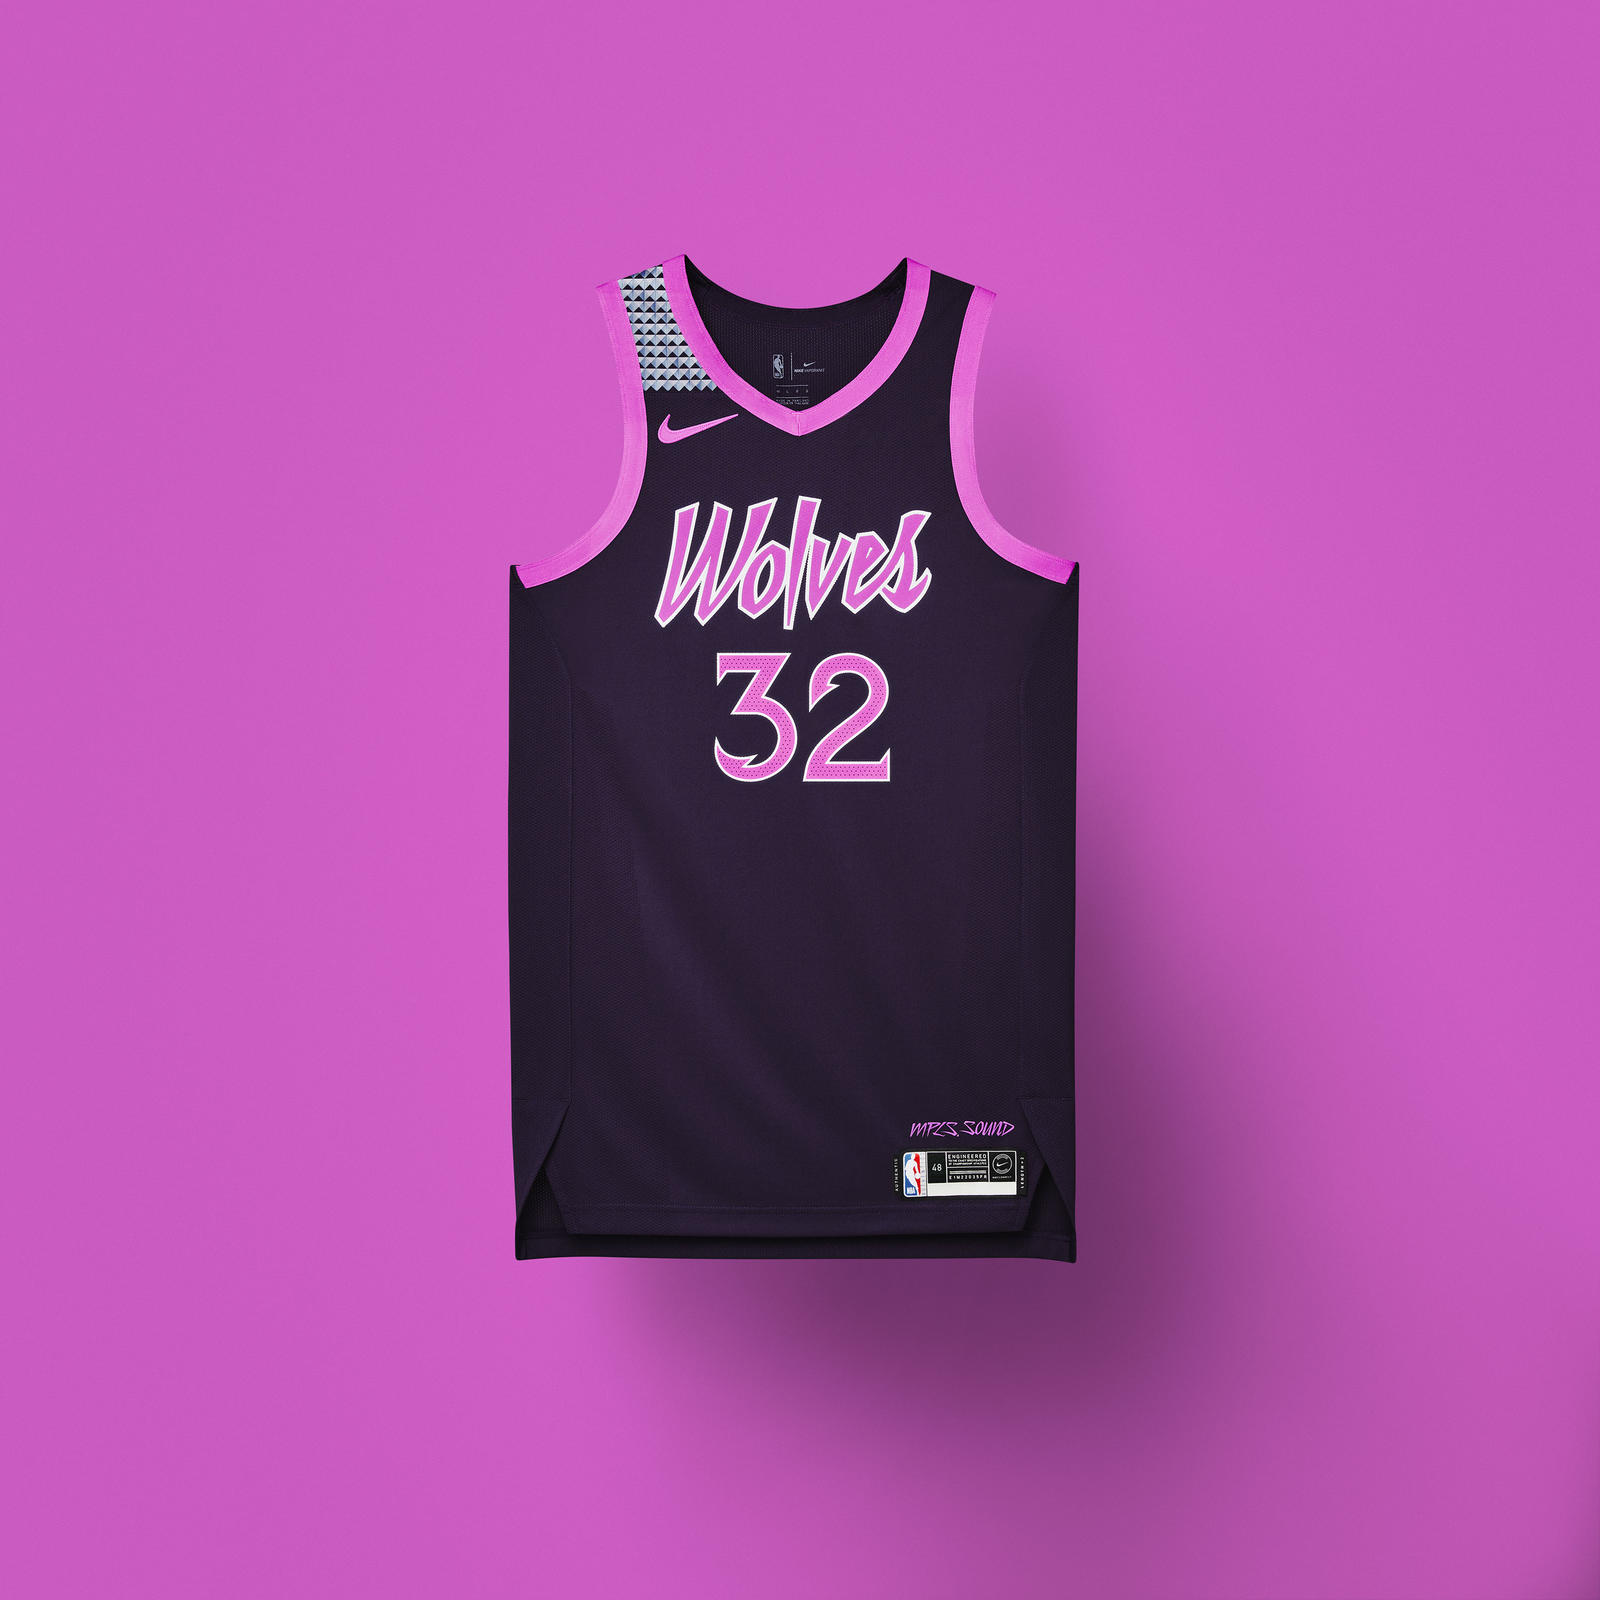 89e36f52cd0 Ranking every  City Edition  jersey